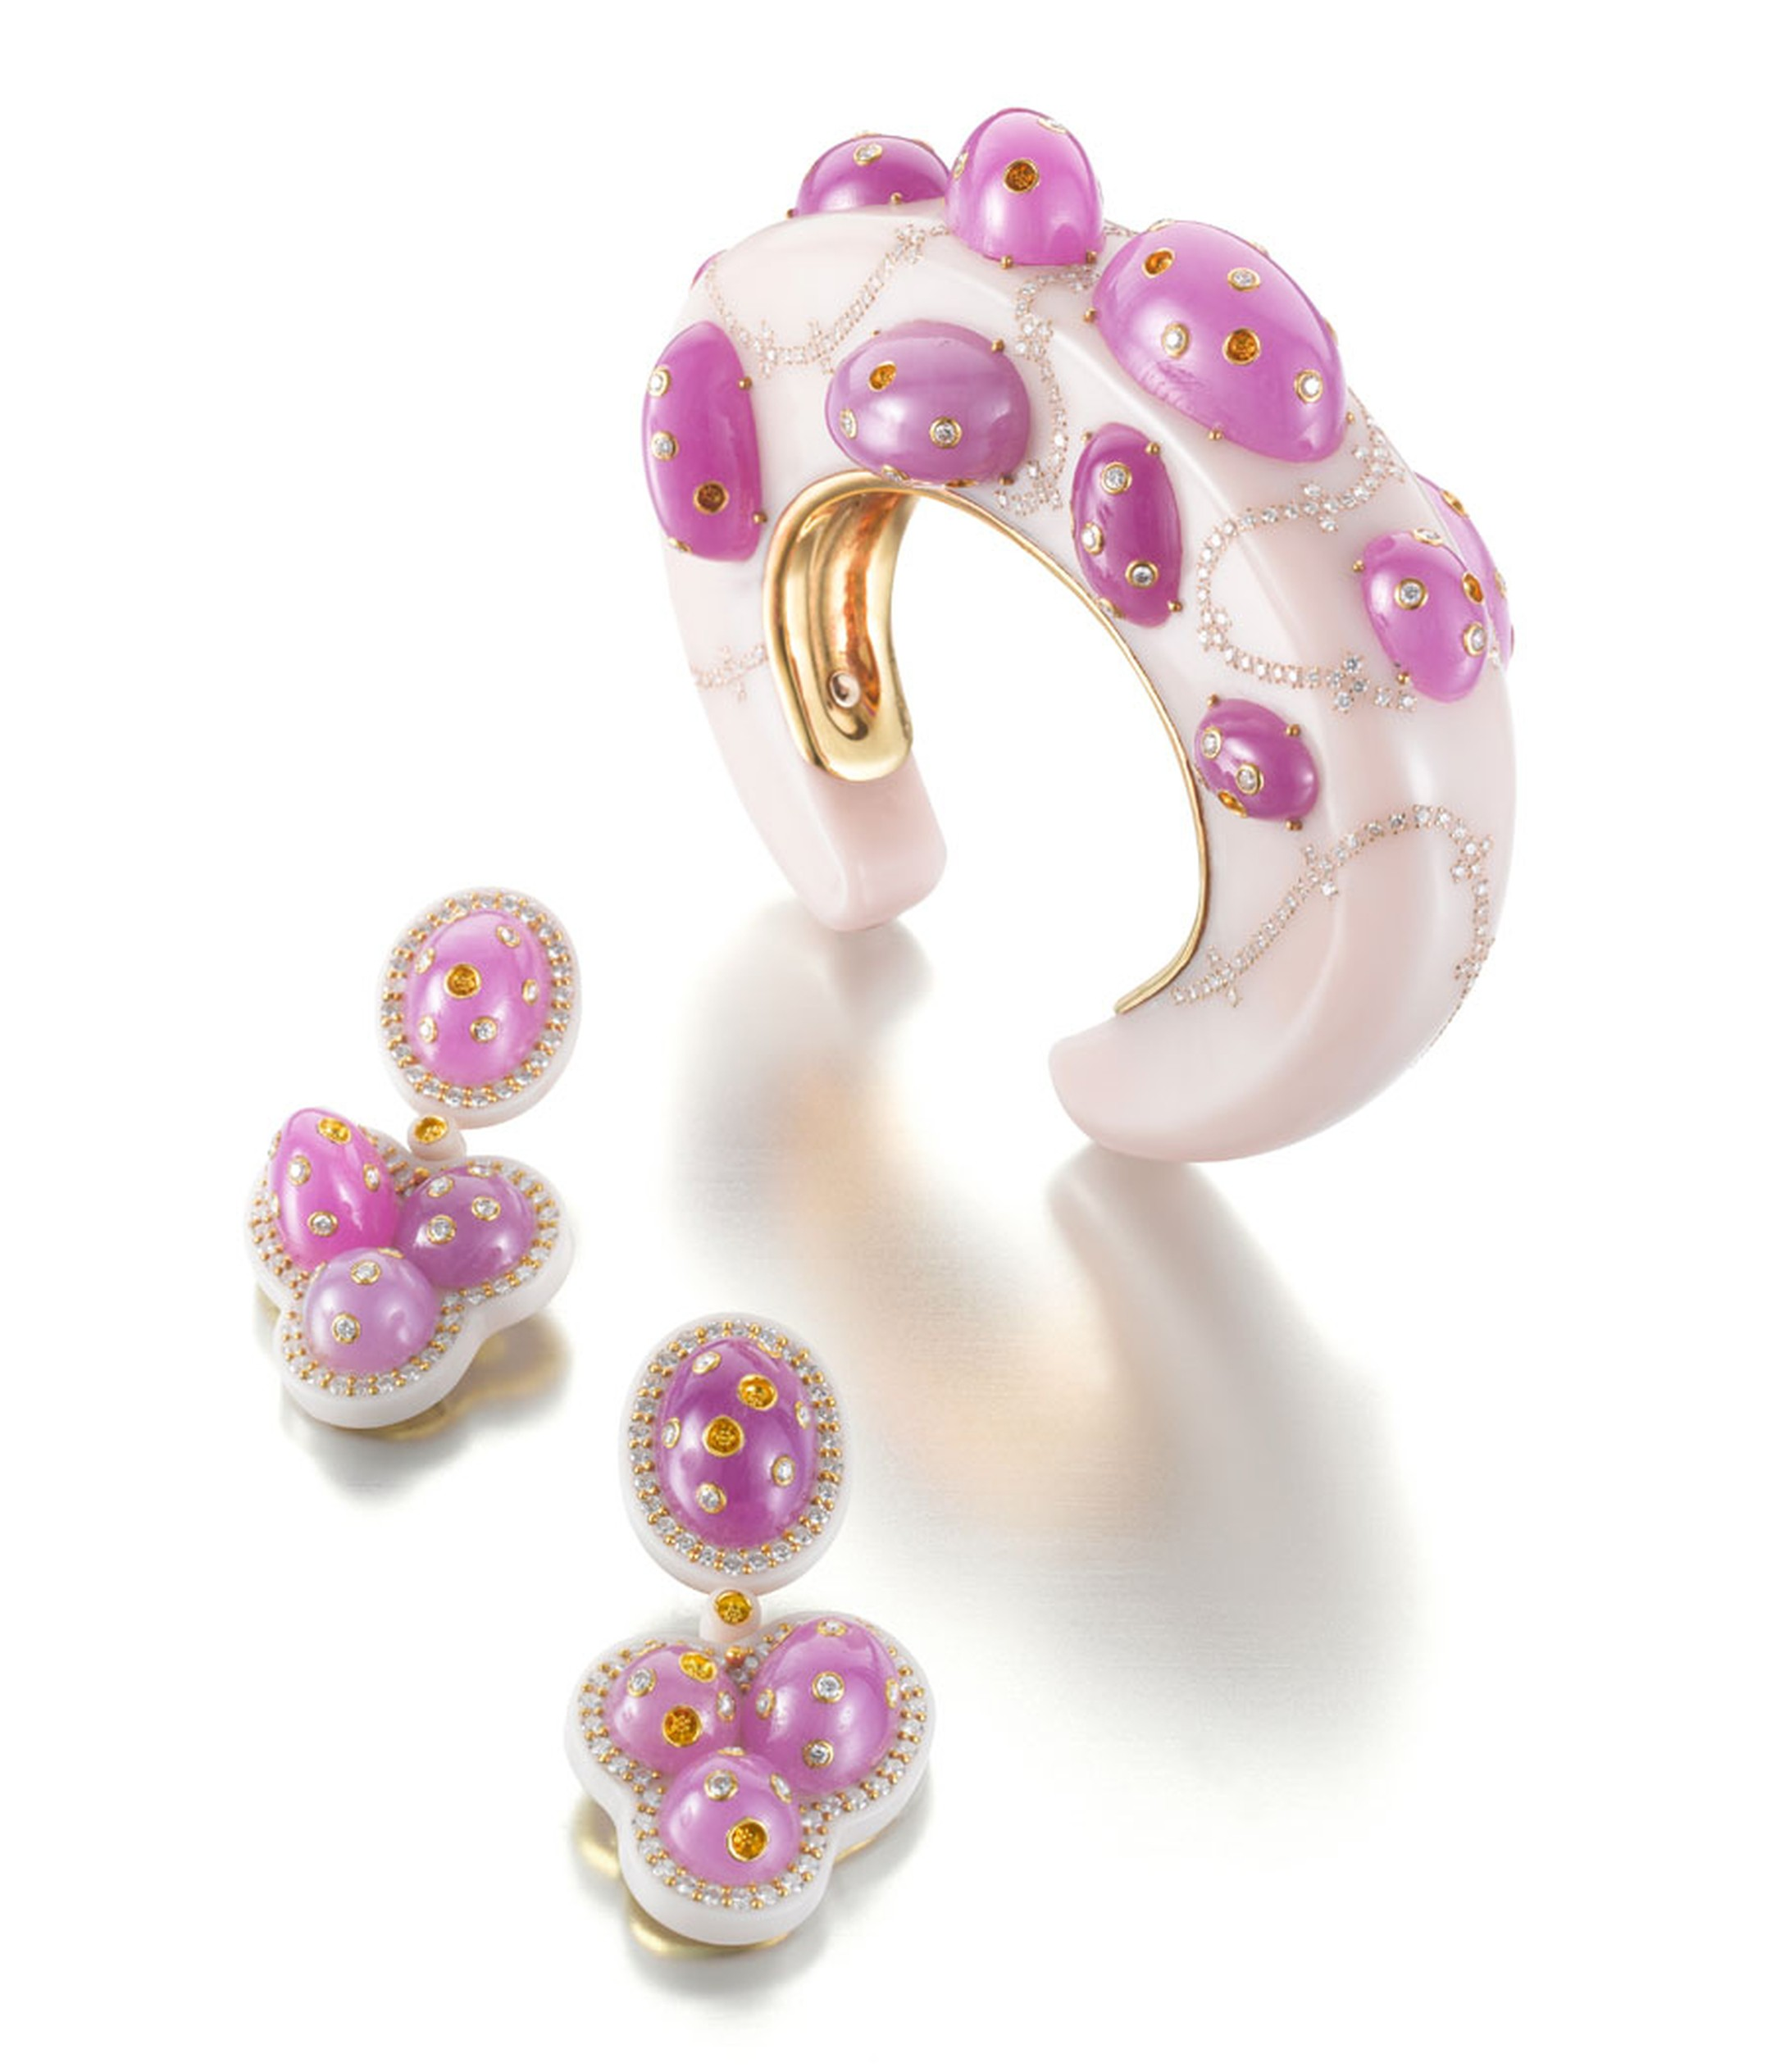 Siegelson-Artistic-Pink-Bakelite-Ruby-and-Diamond-Jellybean-Suite-of-Bracelet-and-Earrings-by-Daniel-Brush.jpg